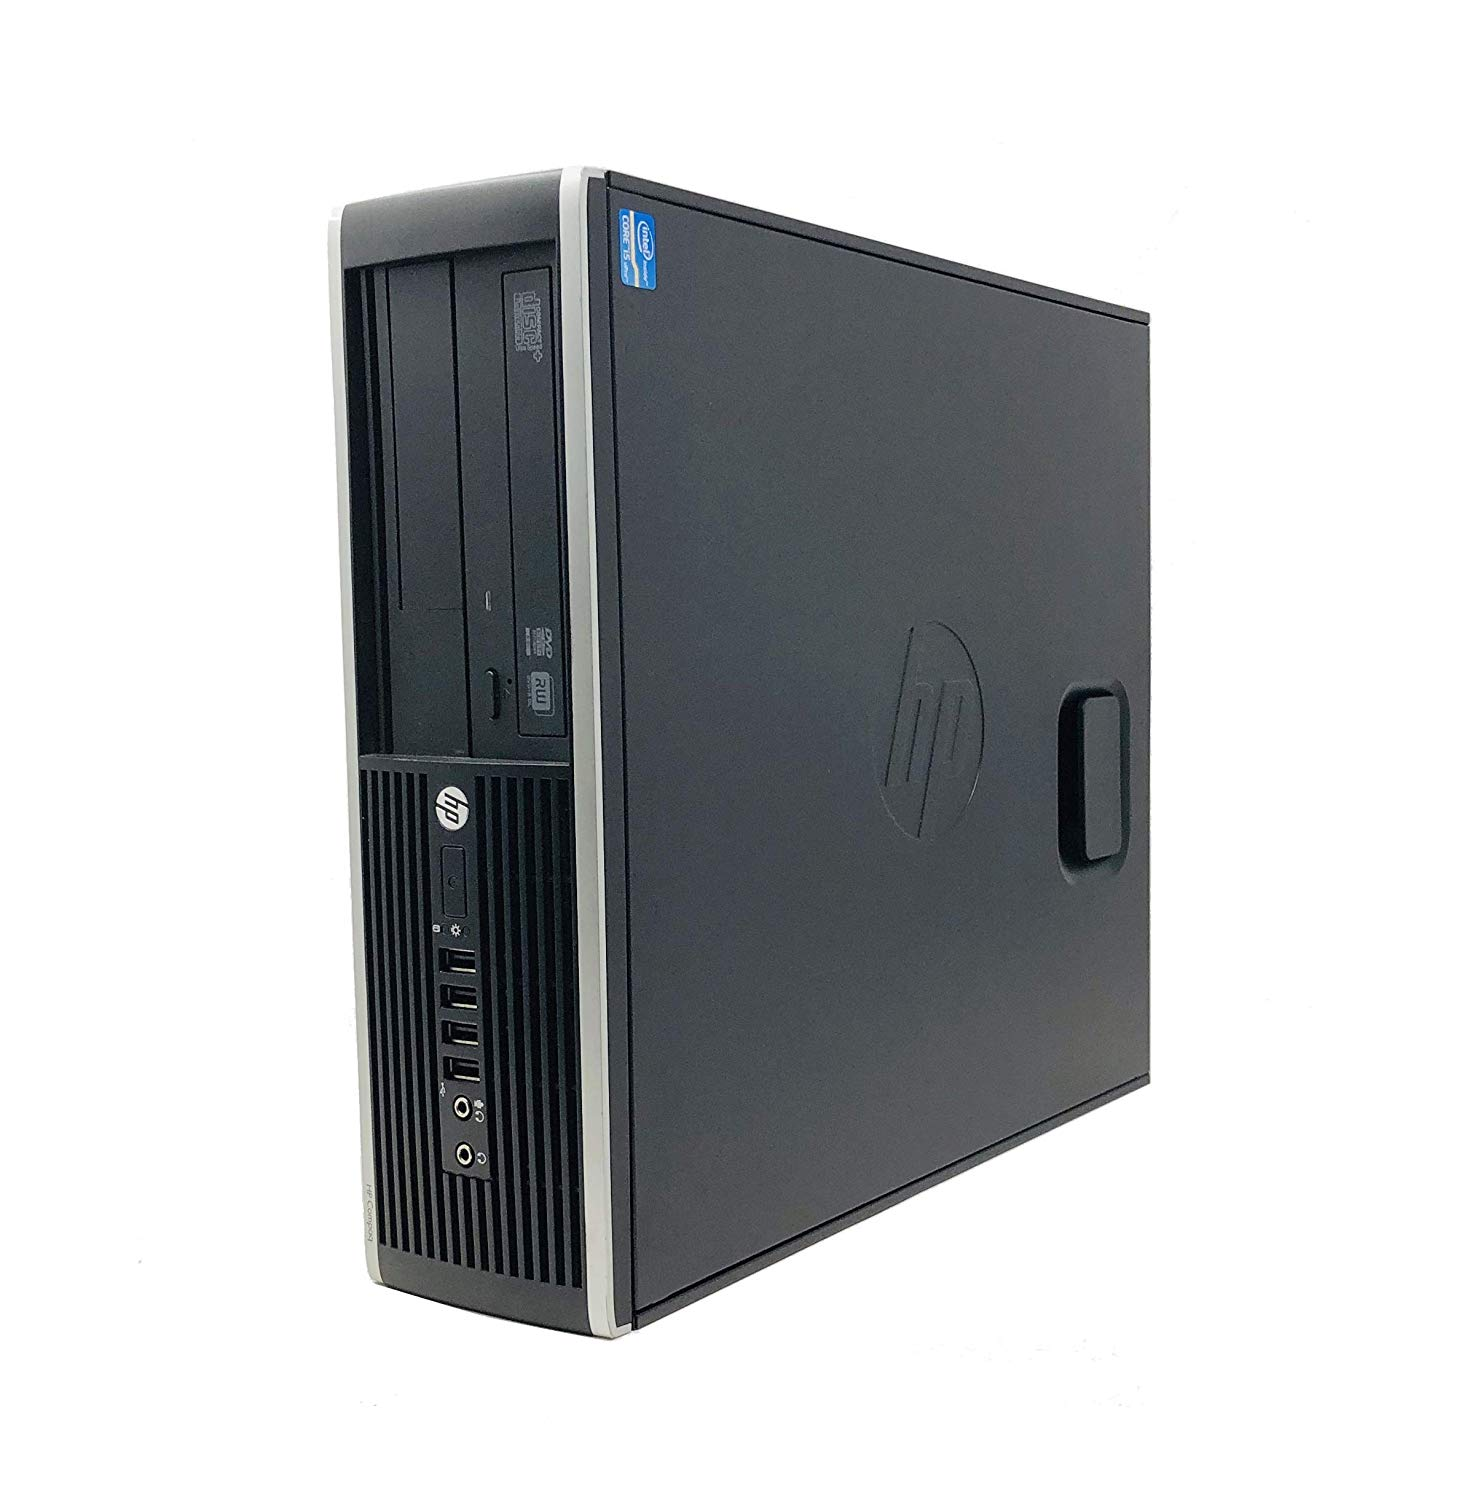 Hp Elite 8200 - Ordenador De Sobremesa (Intel  I5-2400,Lector, 8GB De RAM, Disco SSD De 480GB , Windows 7 PRO ) - Negro (Reacondicionado)